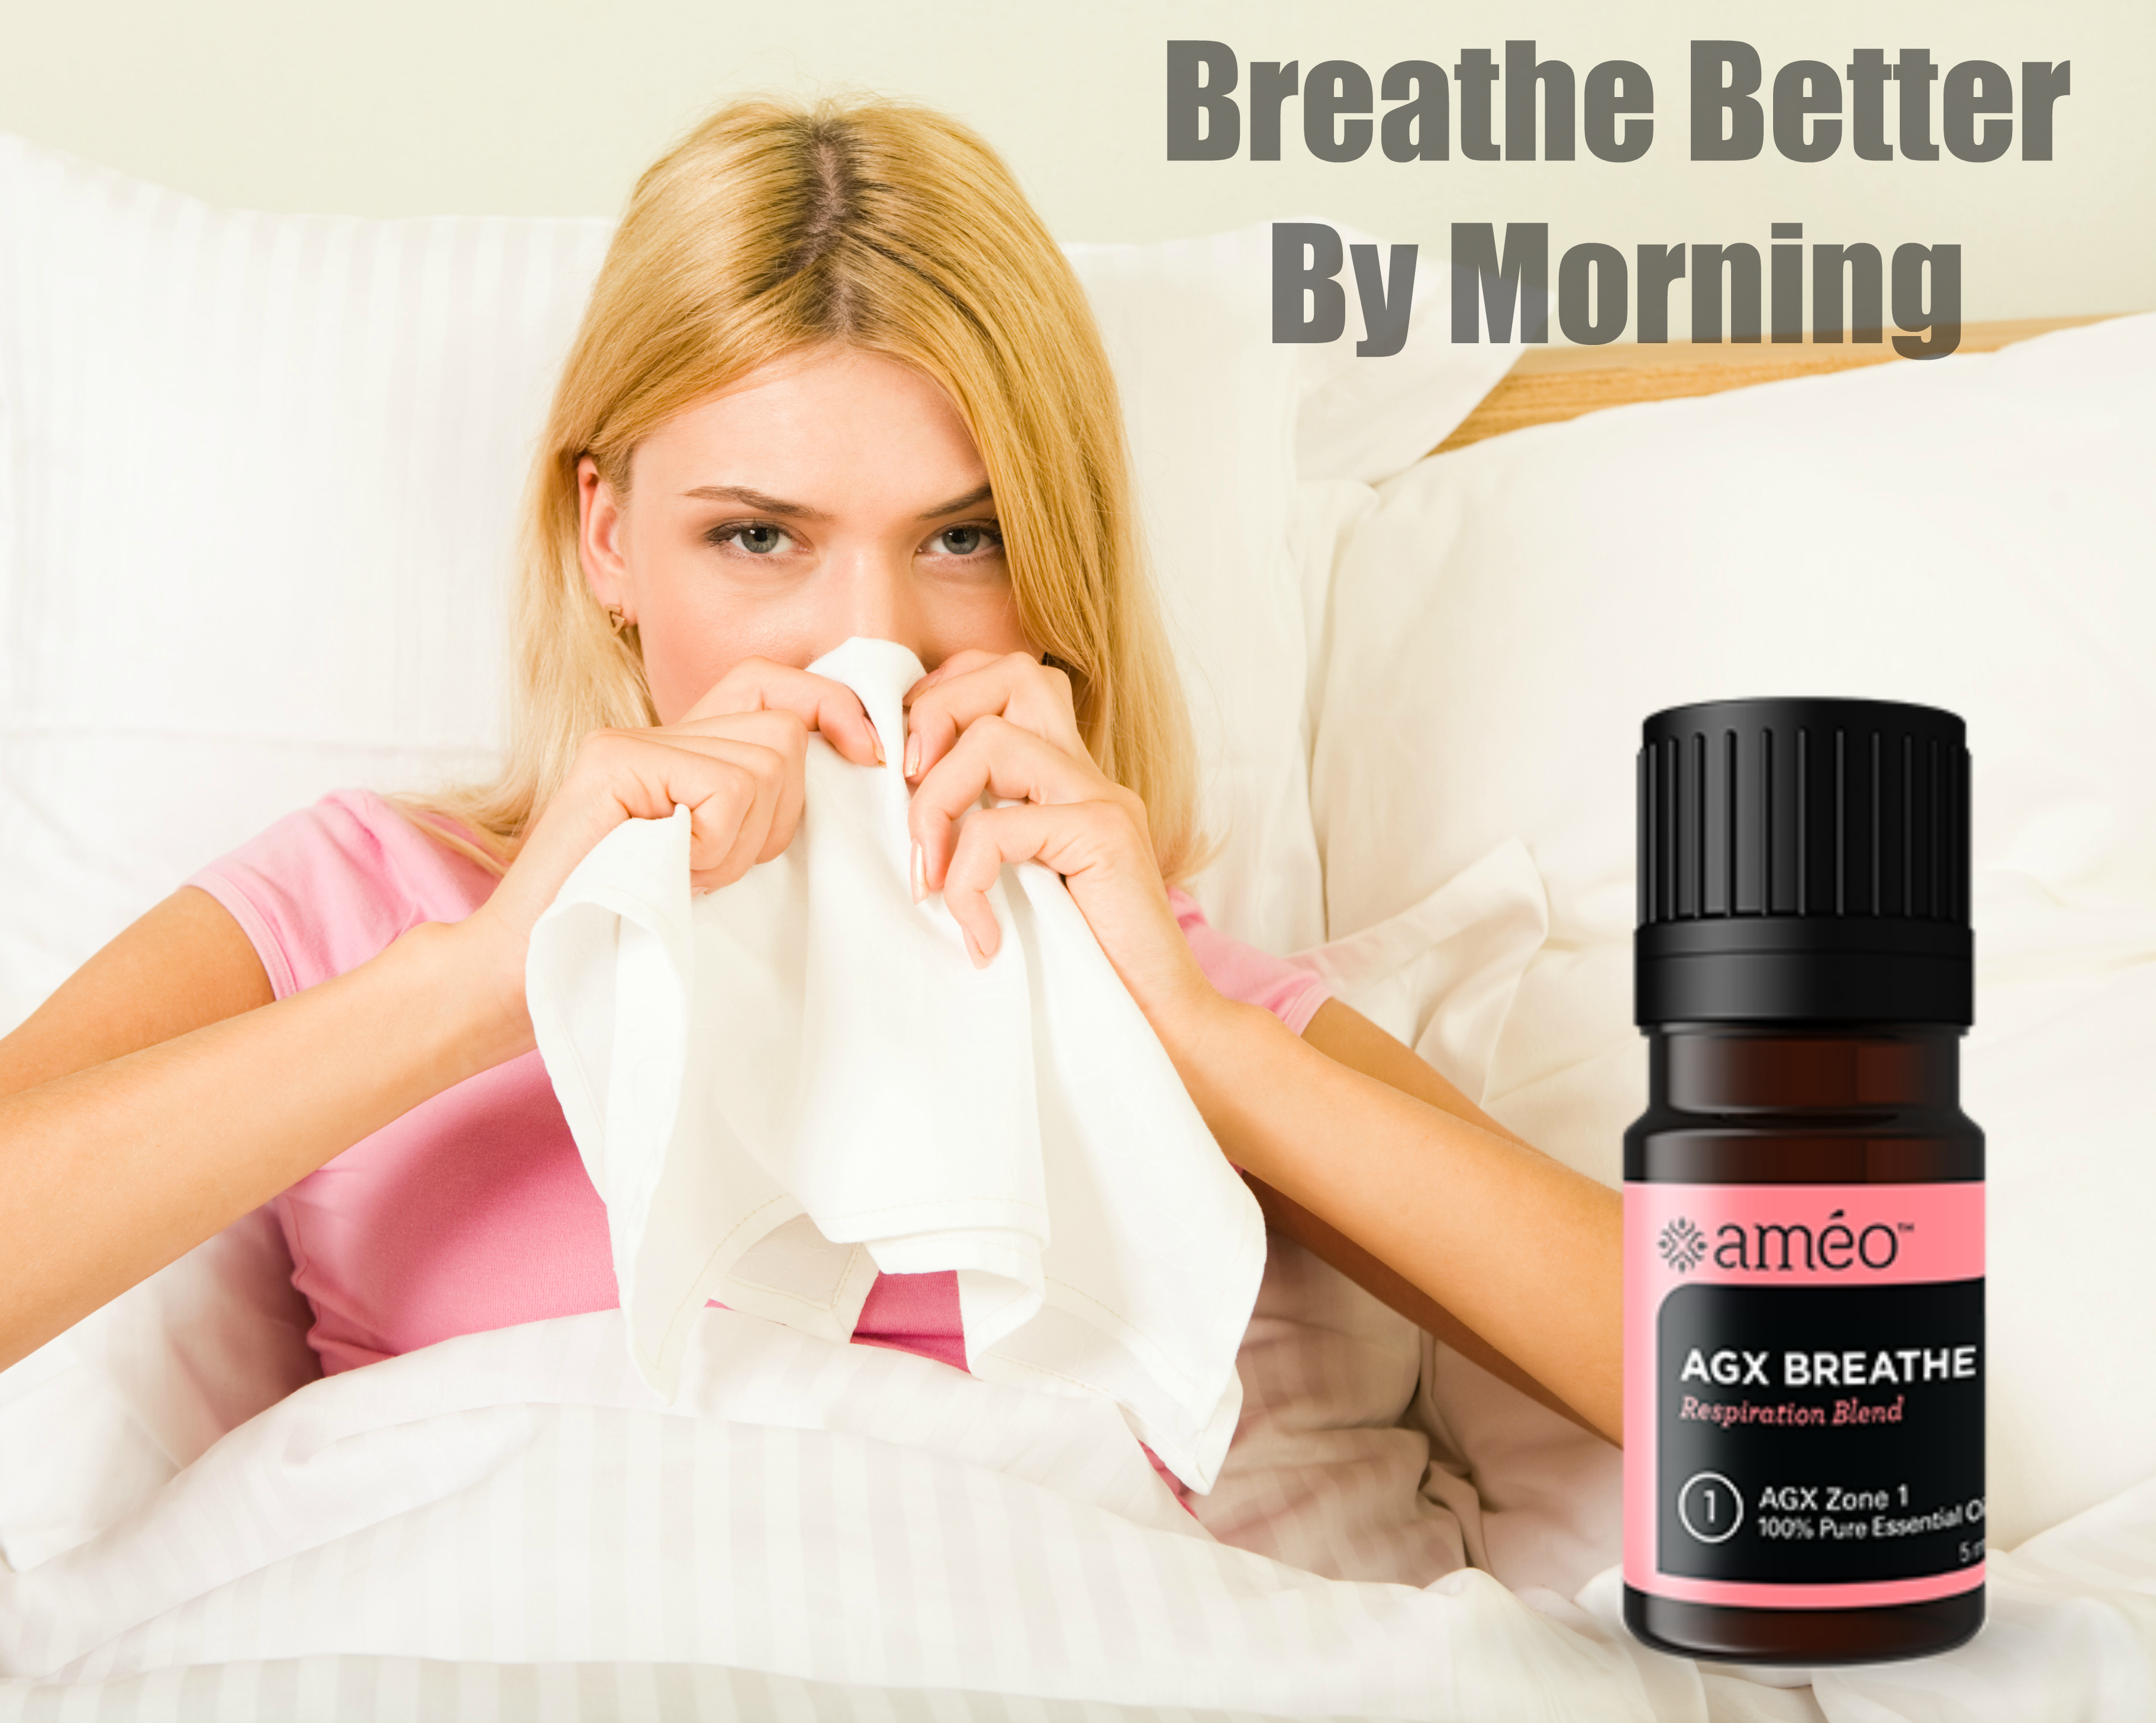 Breathe Better By Morning With Améo AGX Breathe